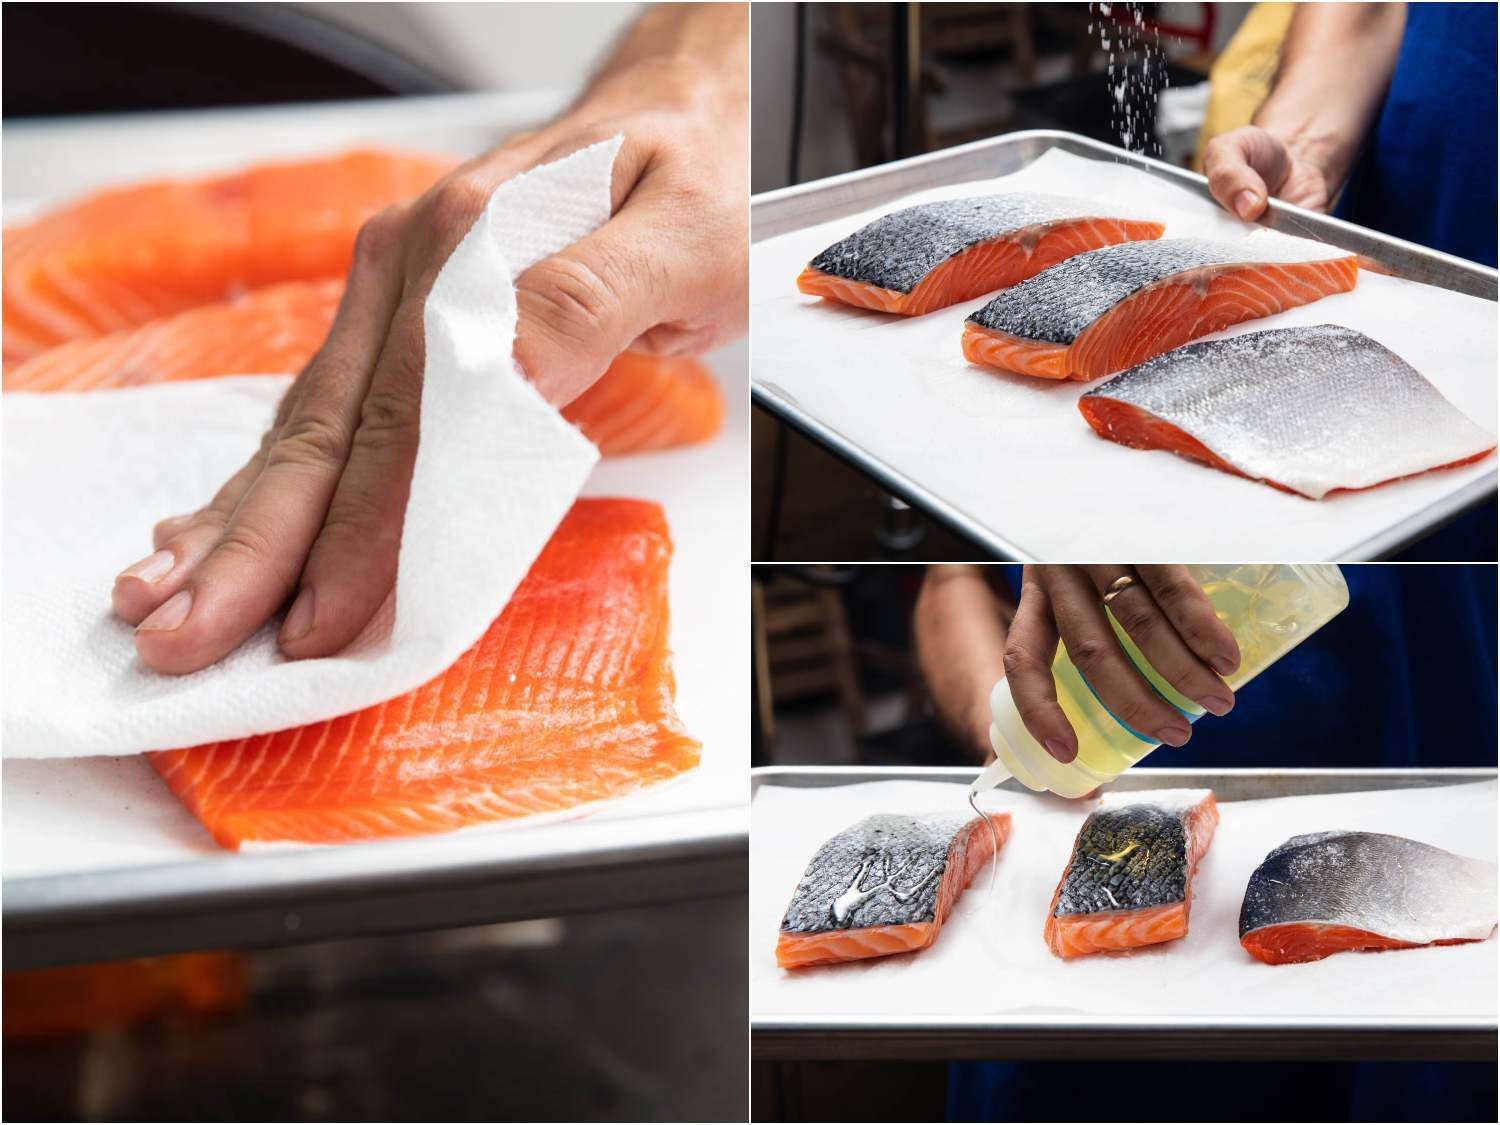 Drying salmon fillets and oiling them before grilling helps prevent them from sticking to the grill